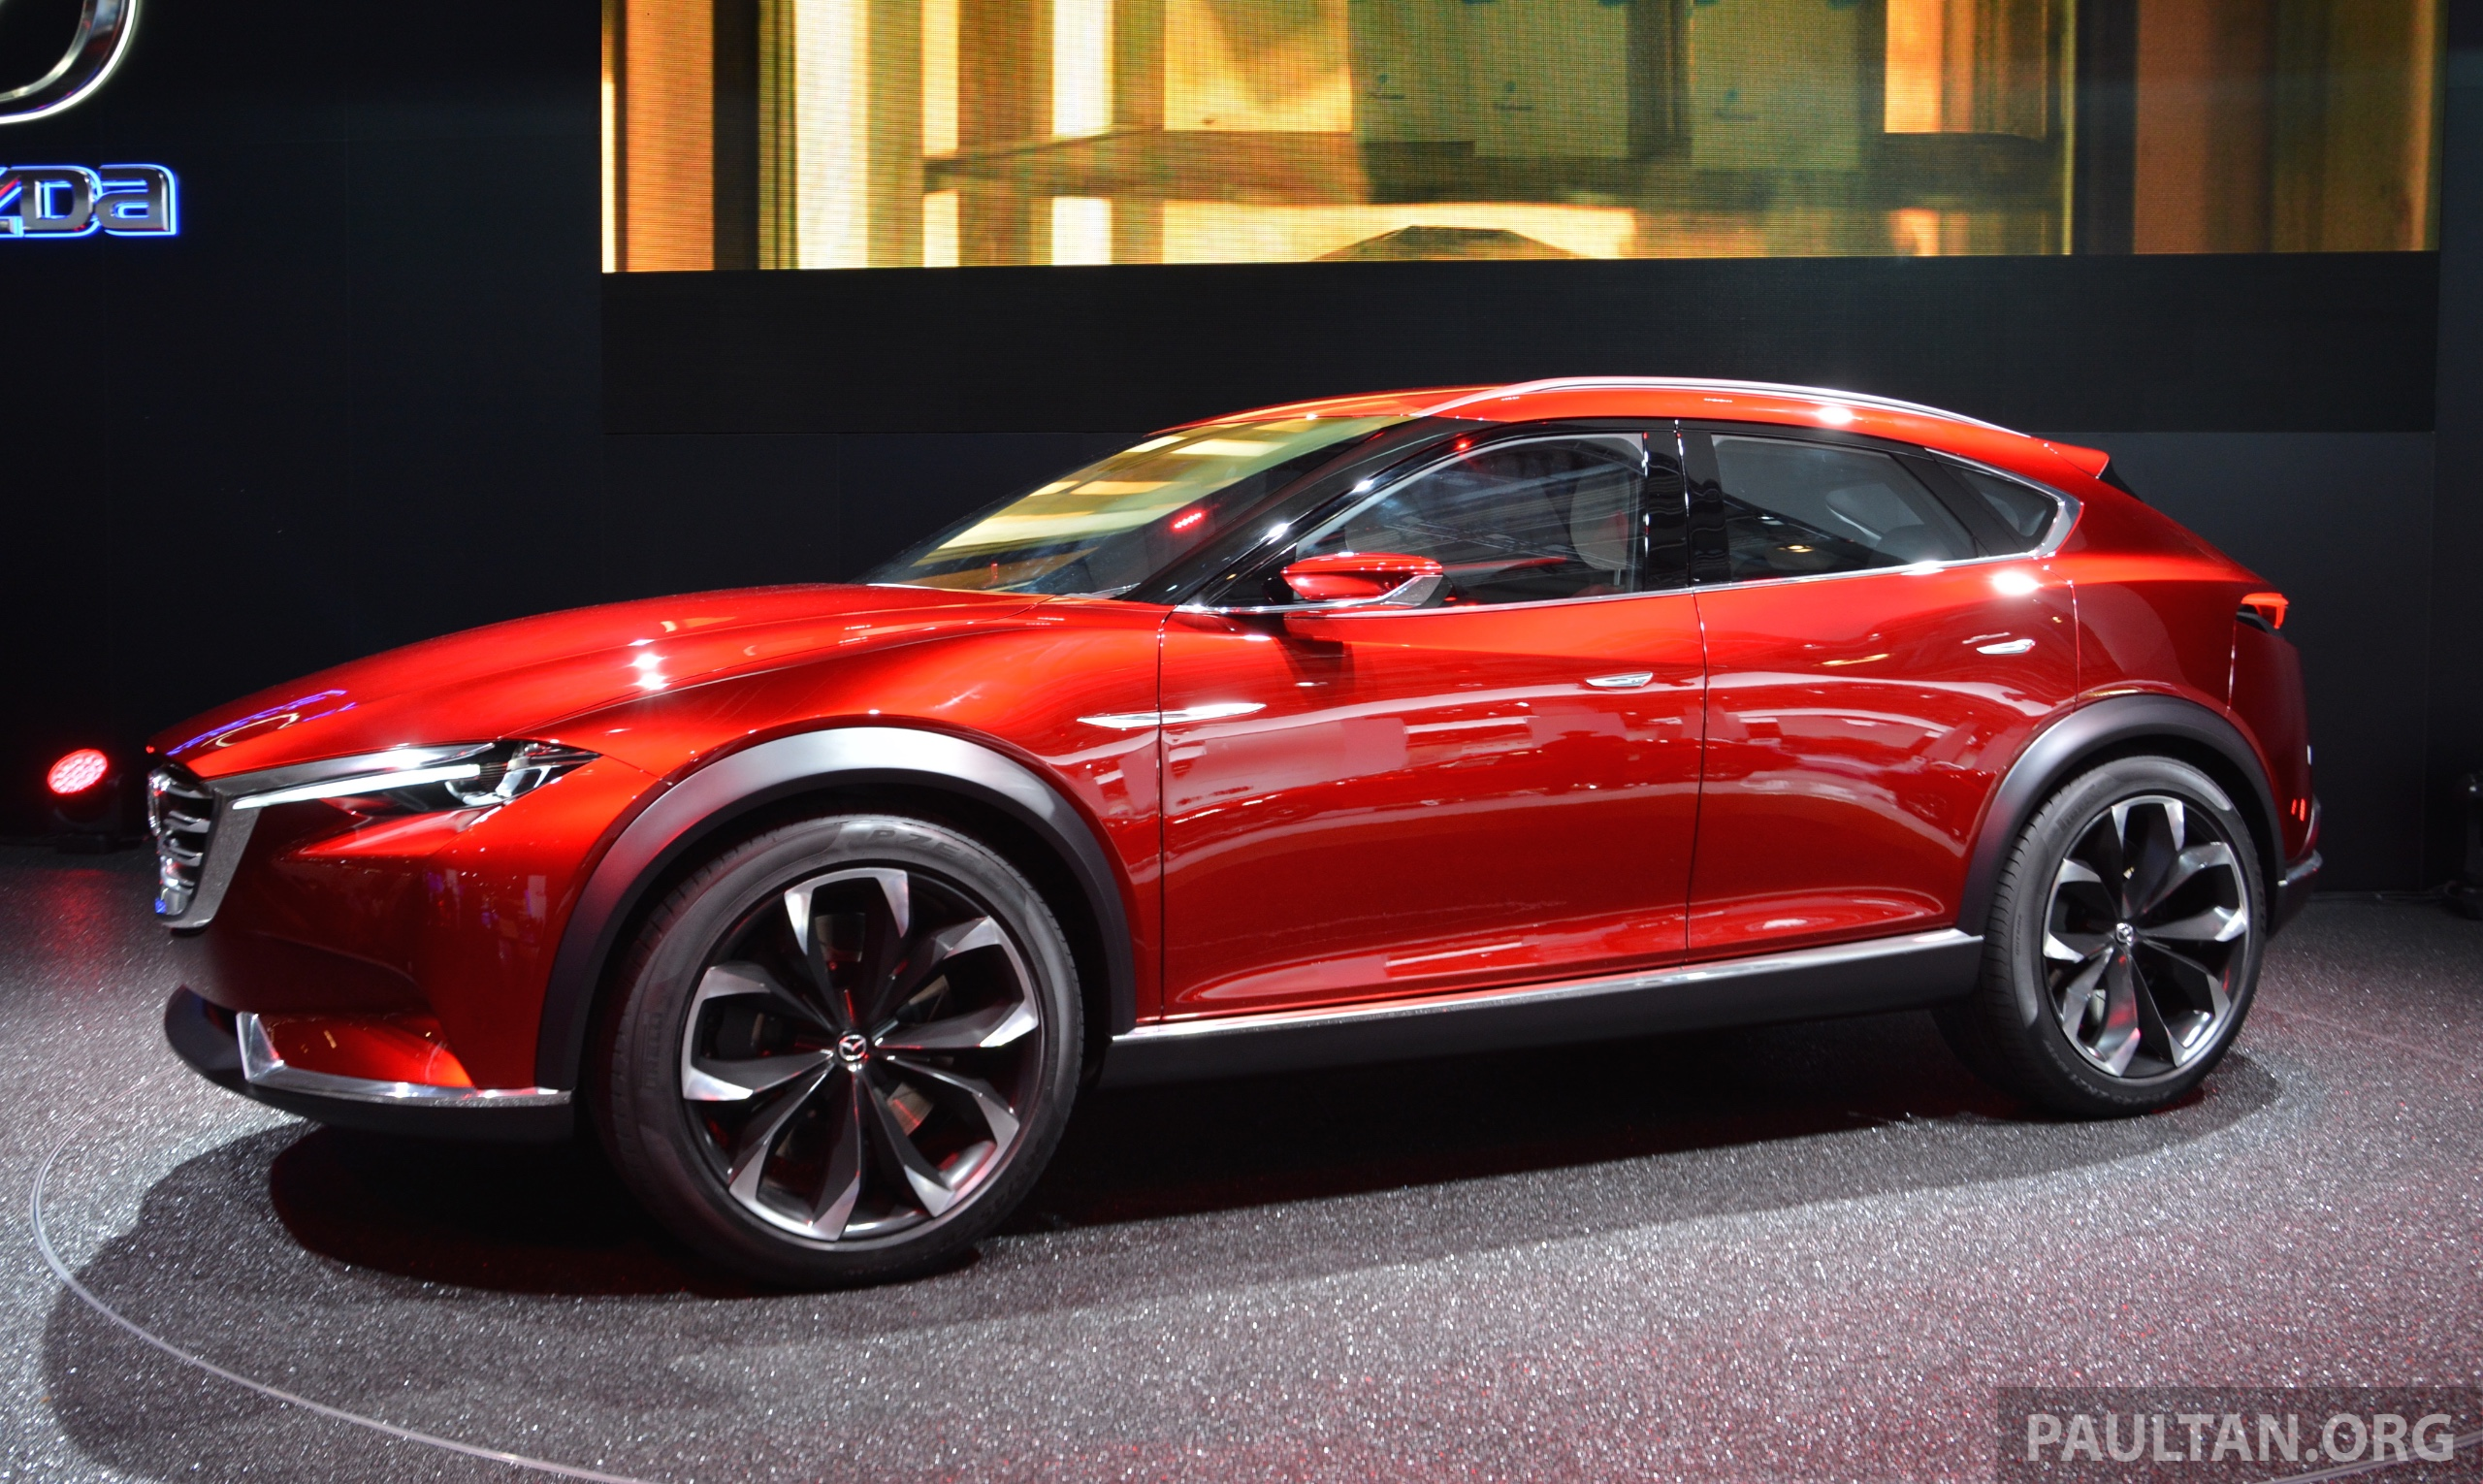 Mazda Koeru concept previews a sportier CX-5 SUV? Paul Tan ...